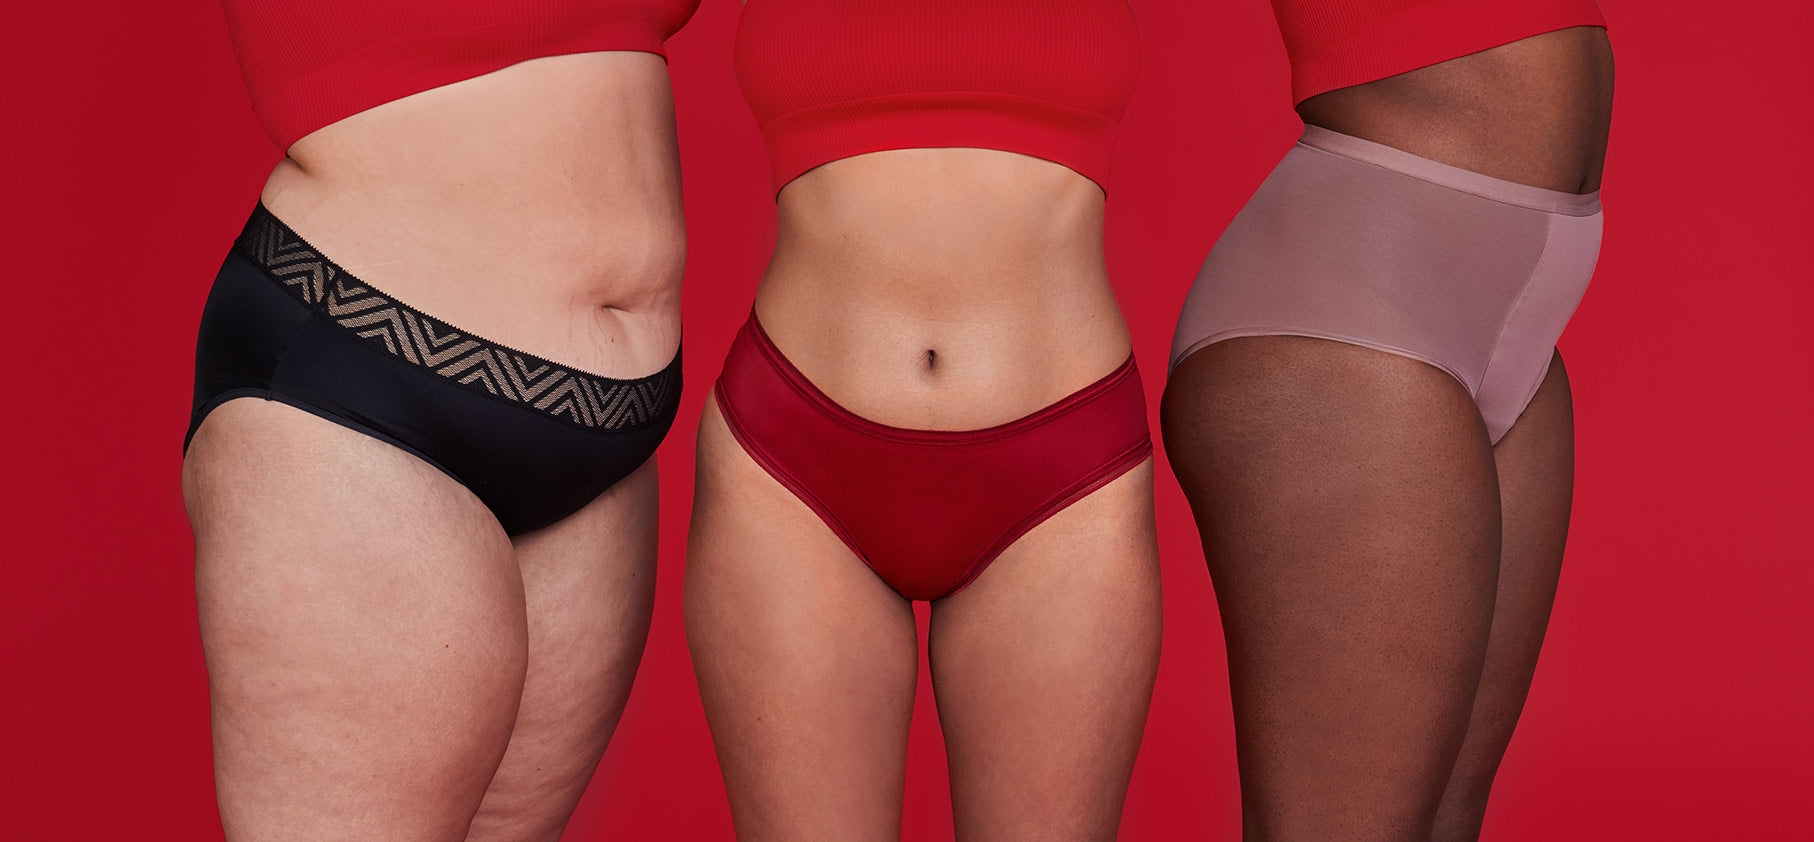 Three women wearing period underwear from Thinx.